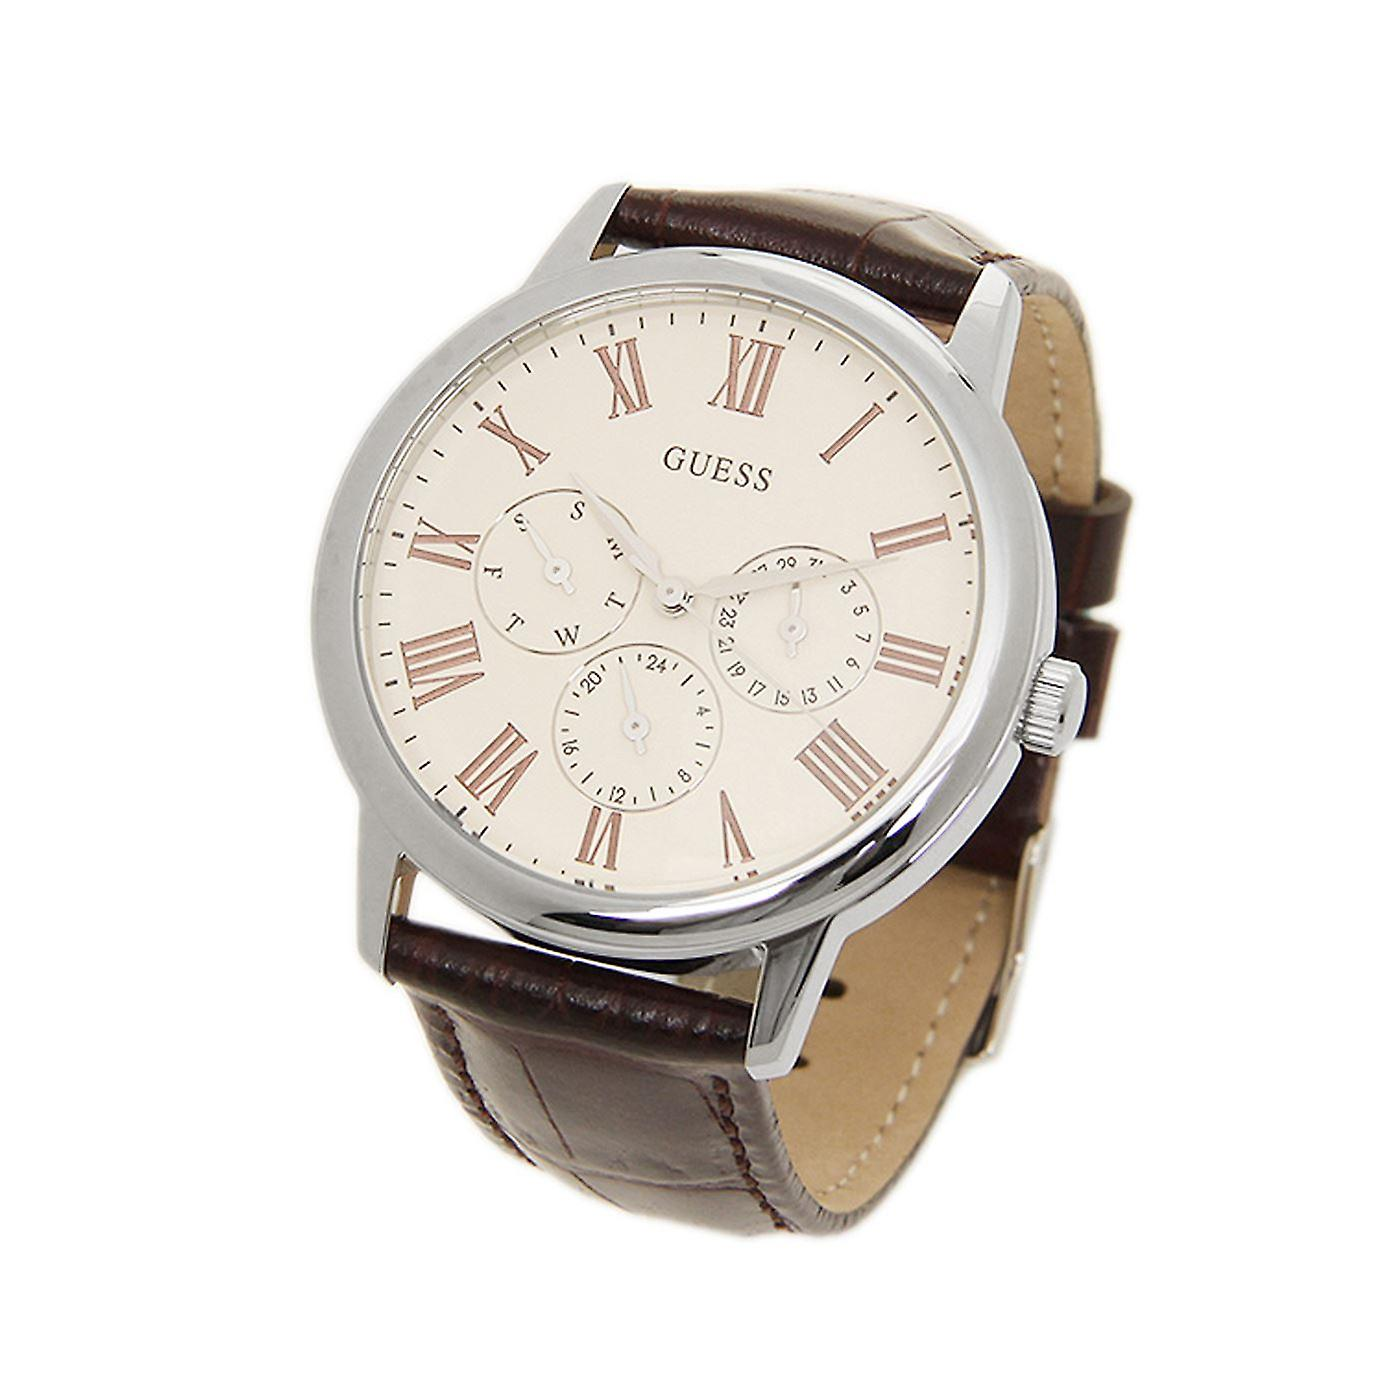 Stunning Guess Mens Watch Brown Leather Chrono Classy UK Warranty W70016G2